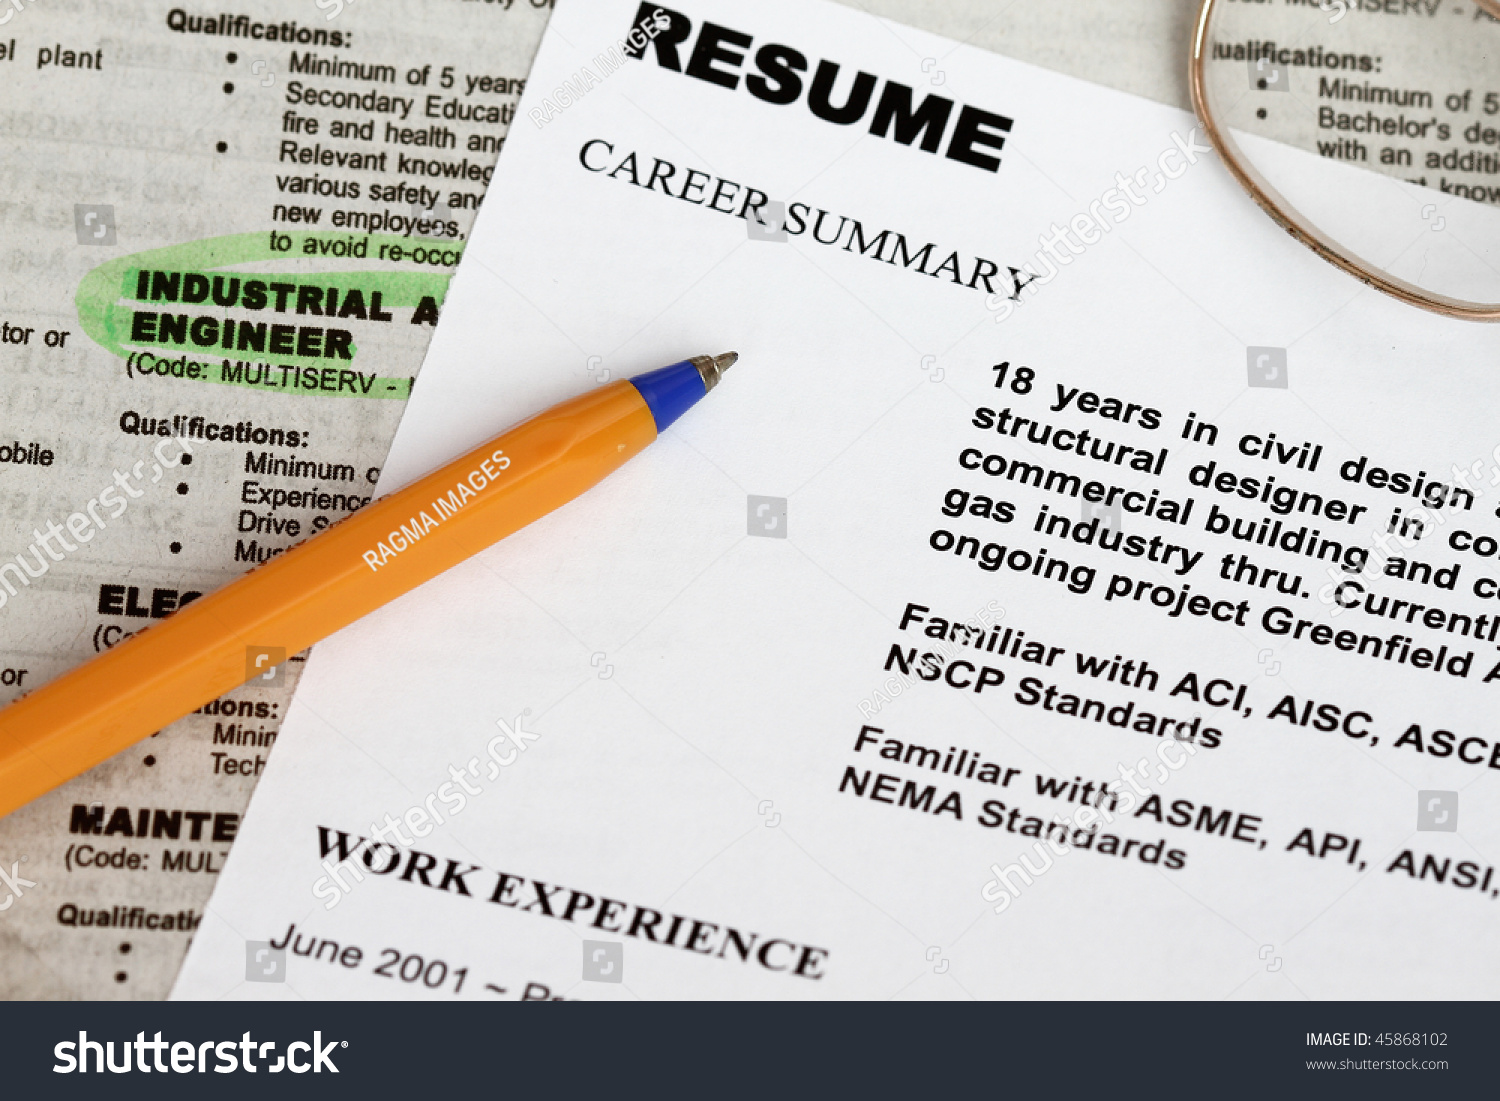 science resume examples and resume on pinterest. resume builder ...